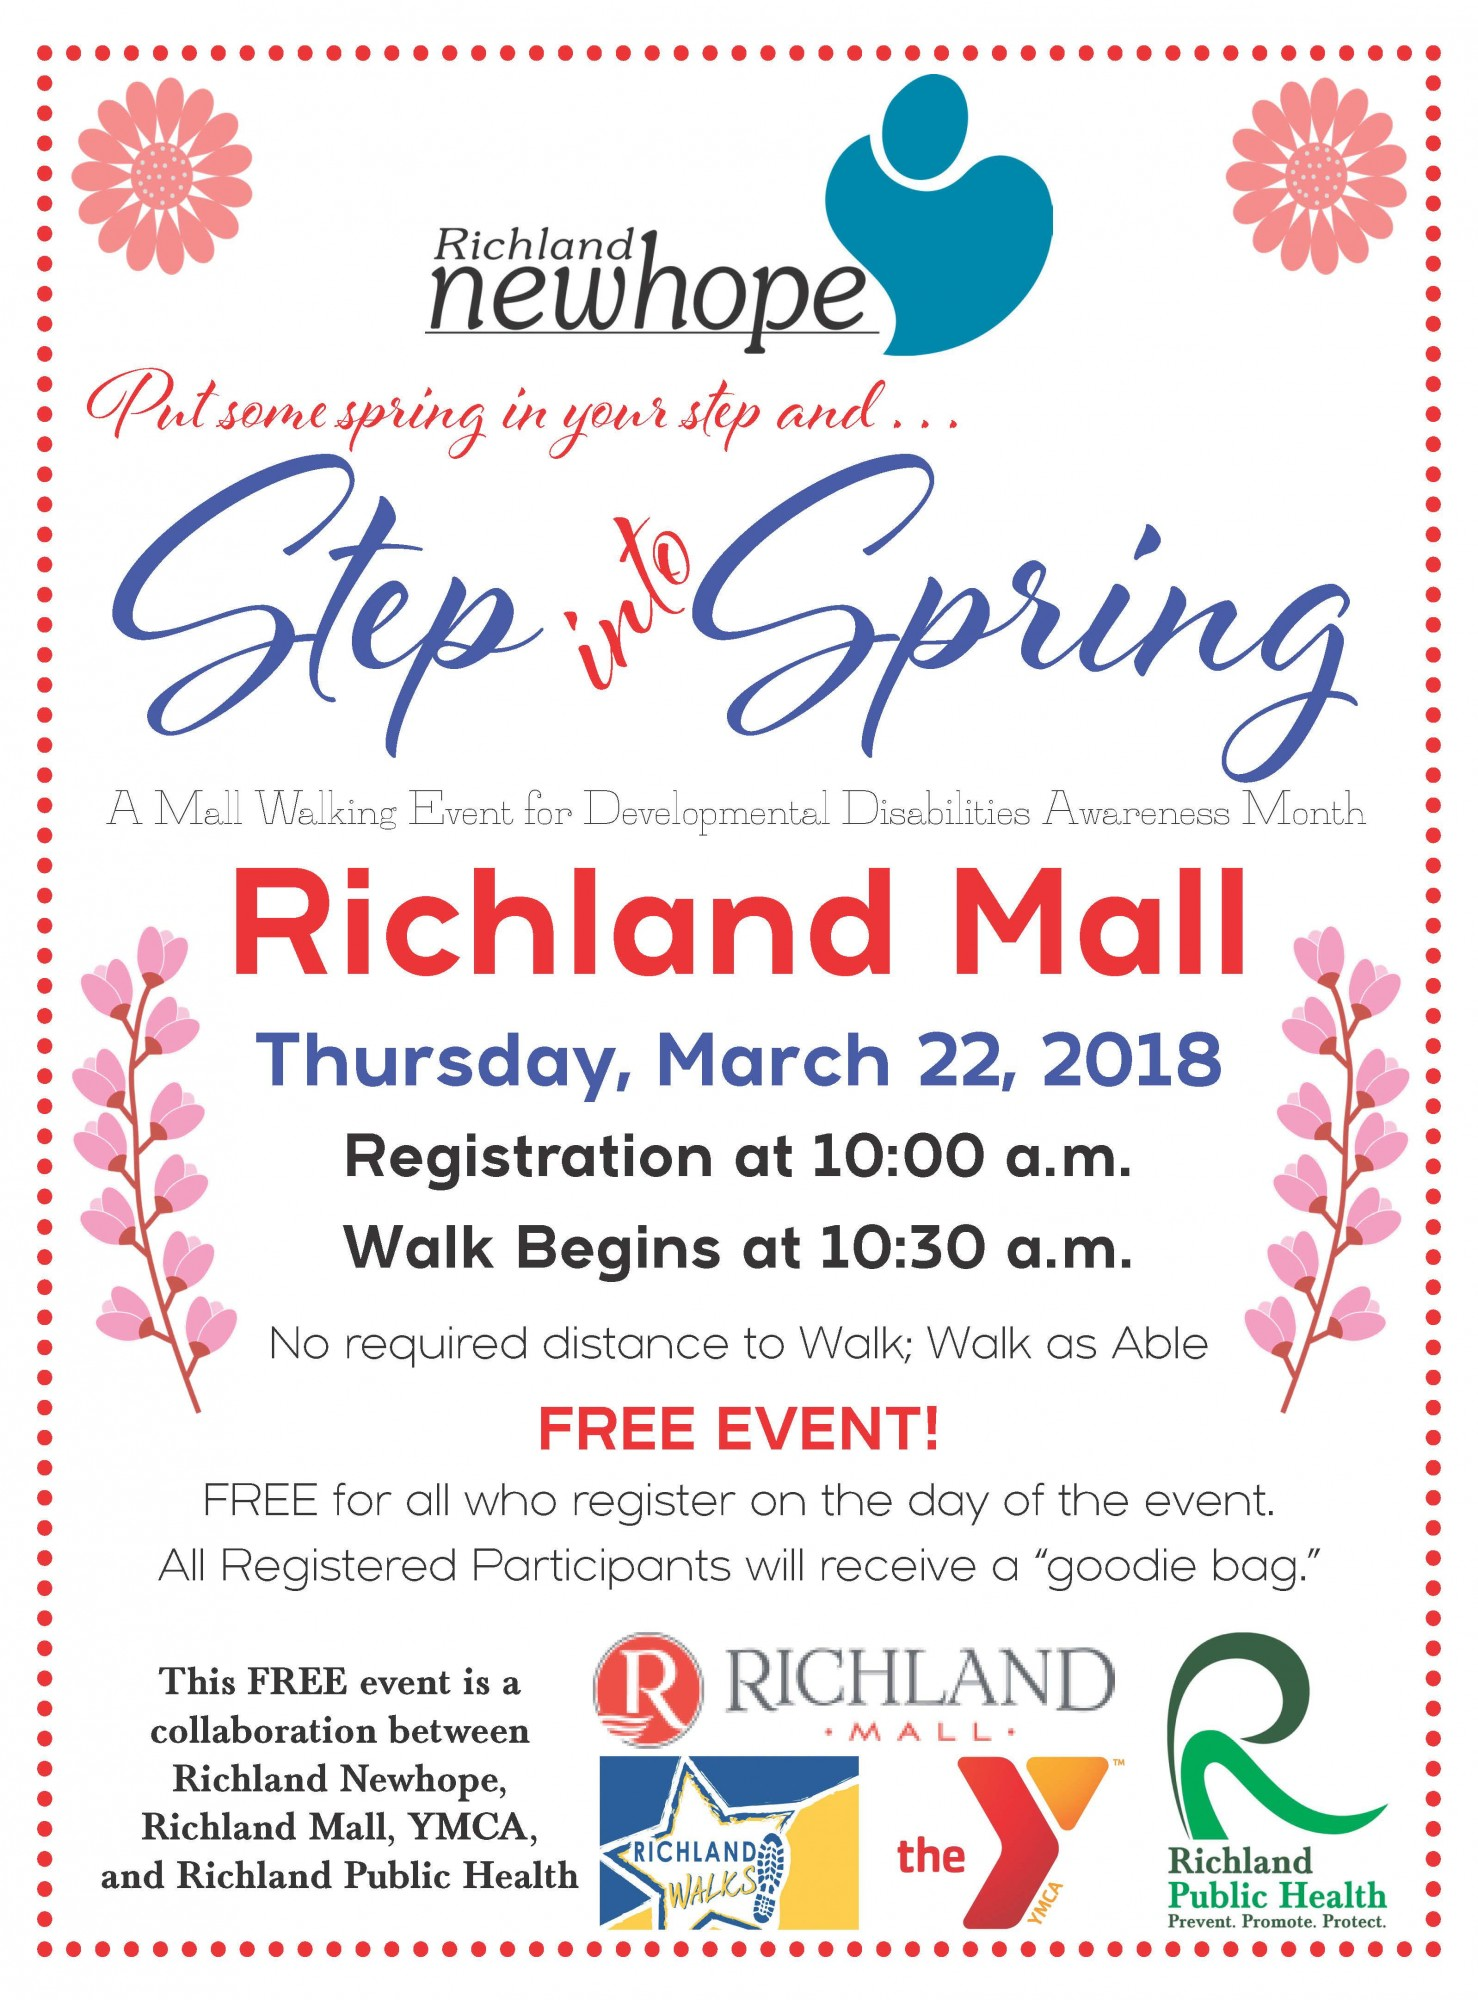 Mall walking event planned for Developmental Disabilities Awareness Month